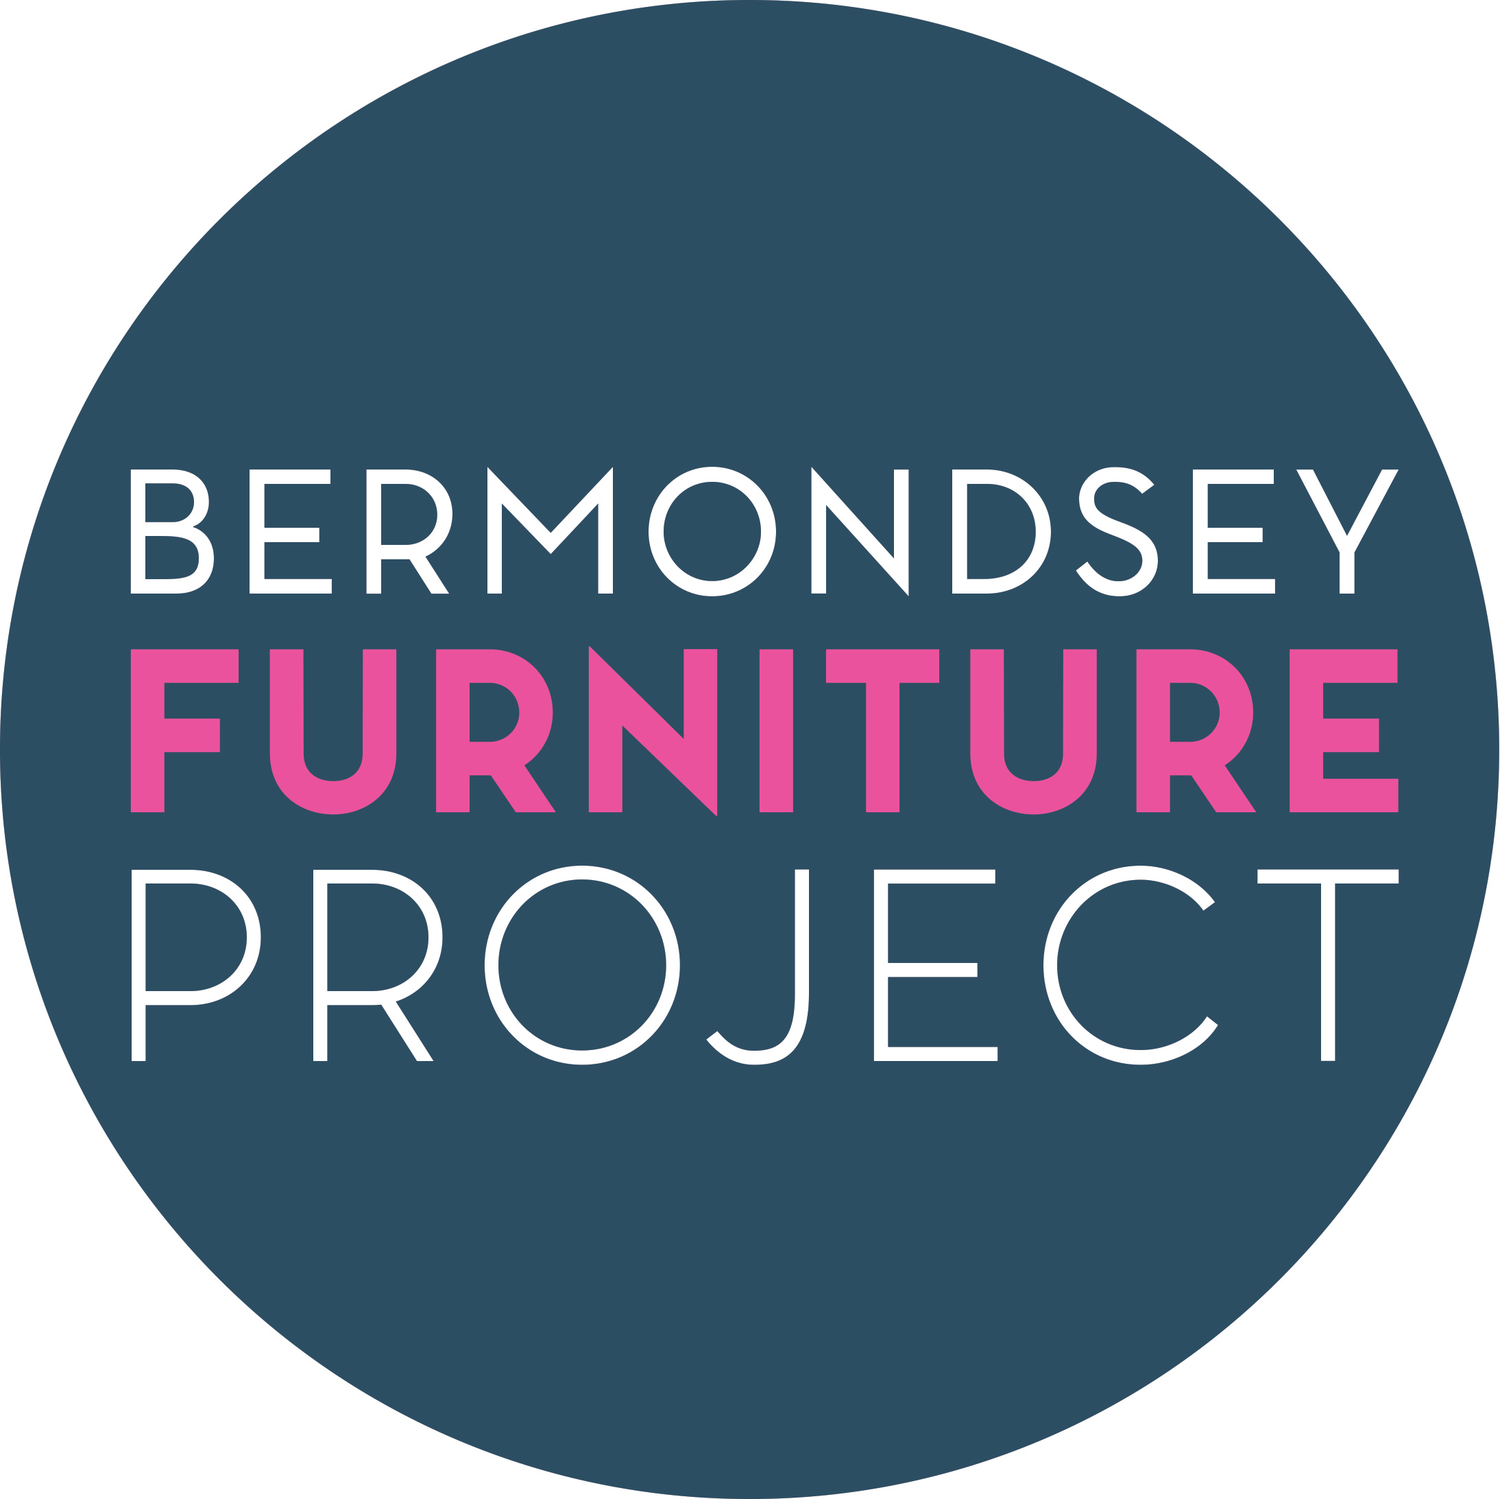 Bermondsey Furniture Project